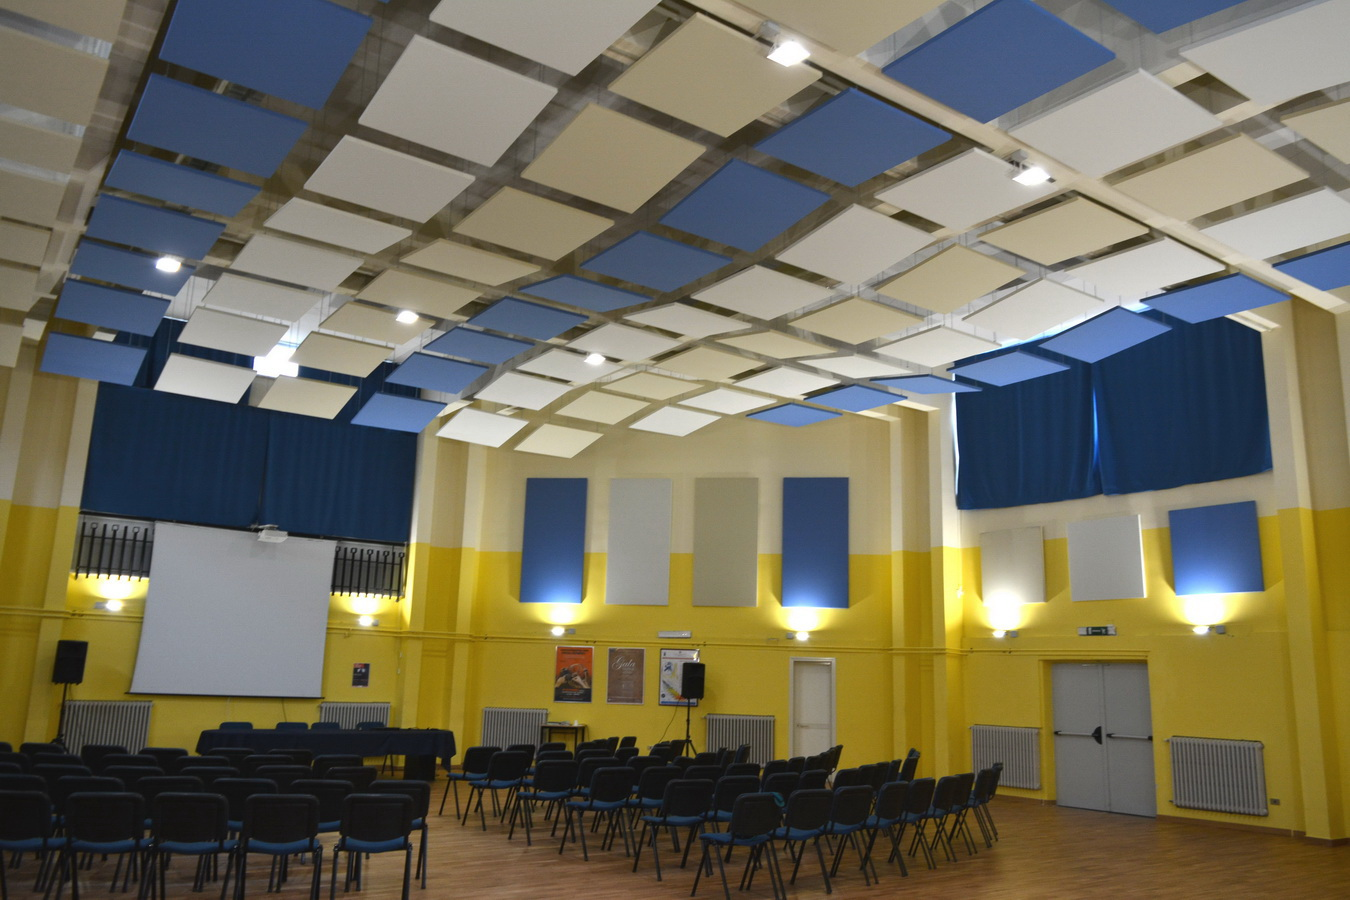 Multifunctional-spaces-suspended-sound-absorbers-for-reverb-control